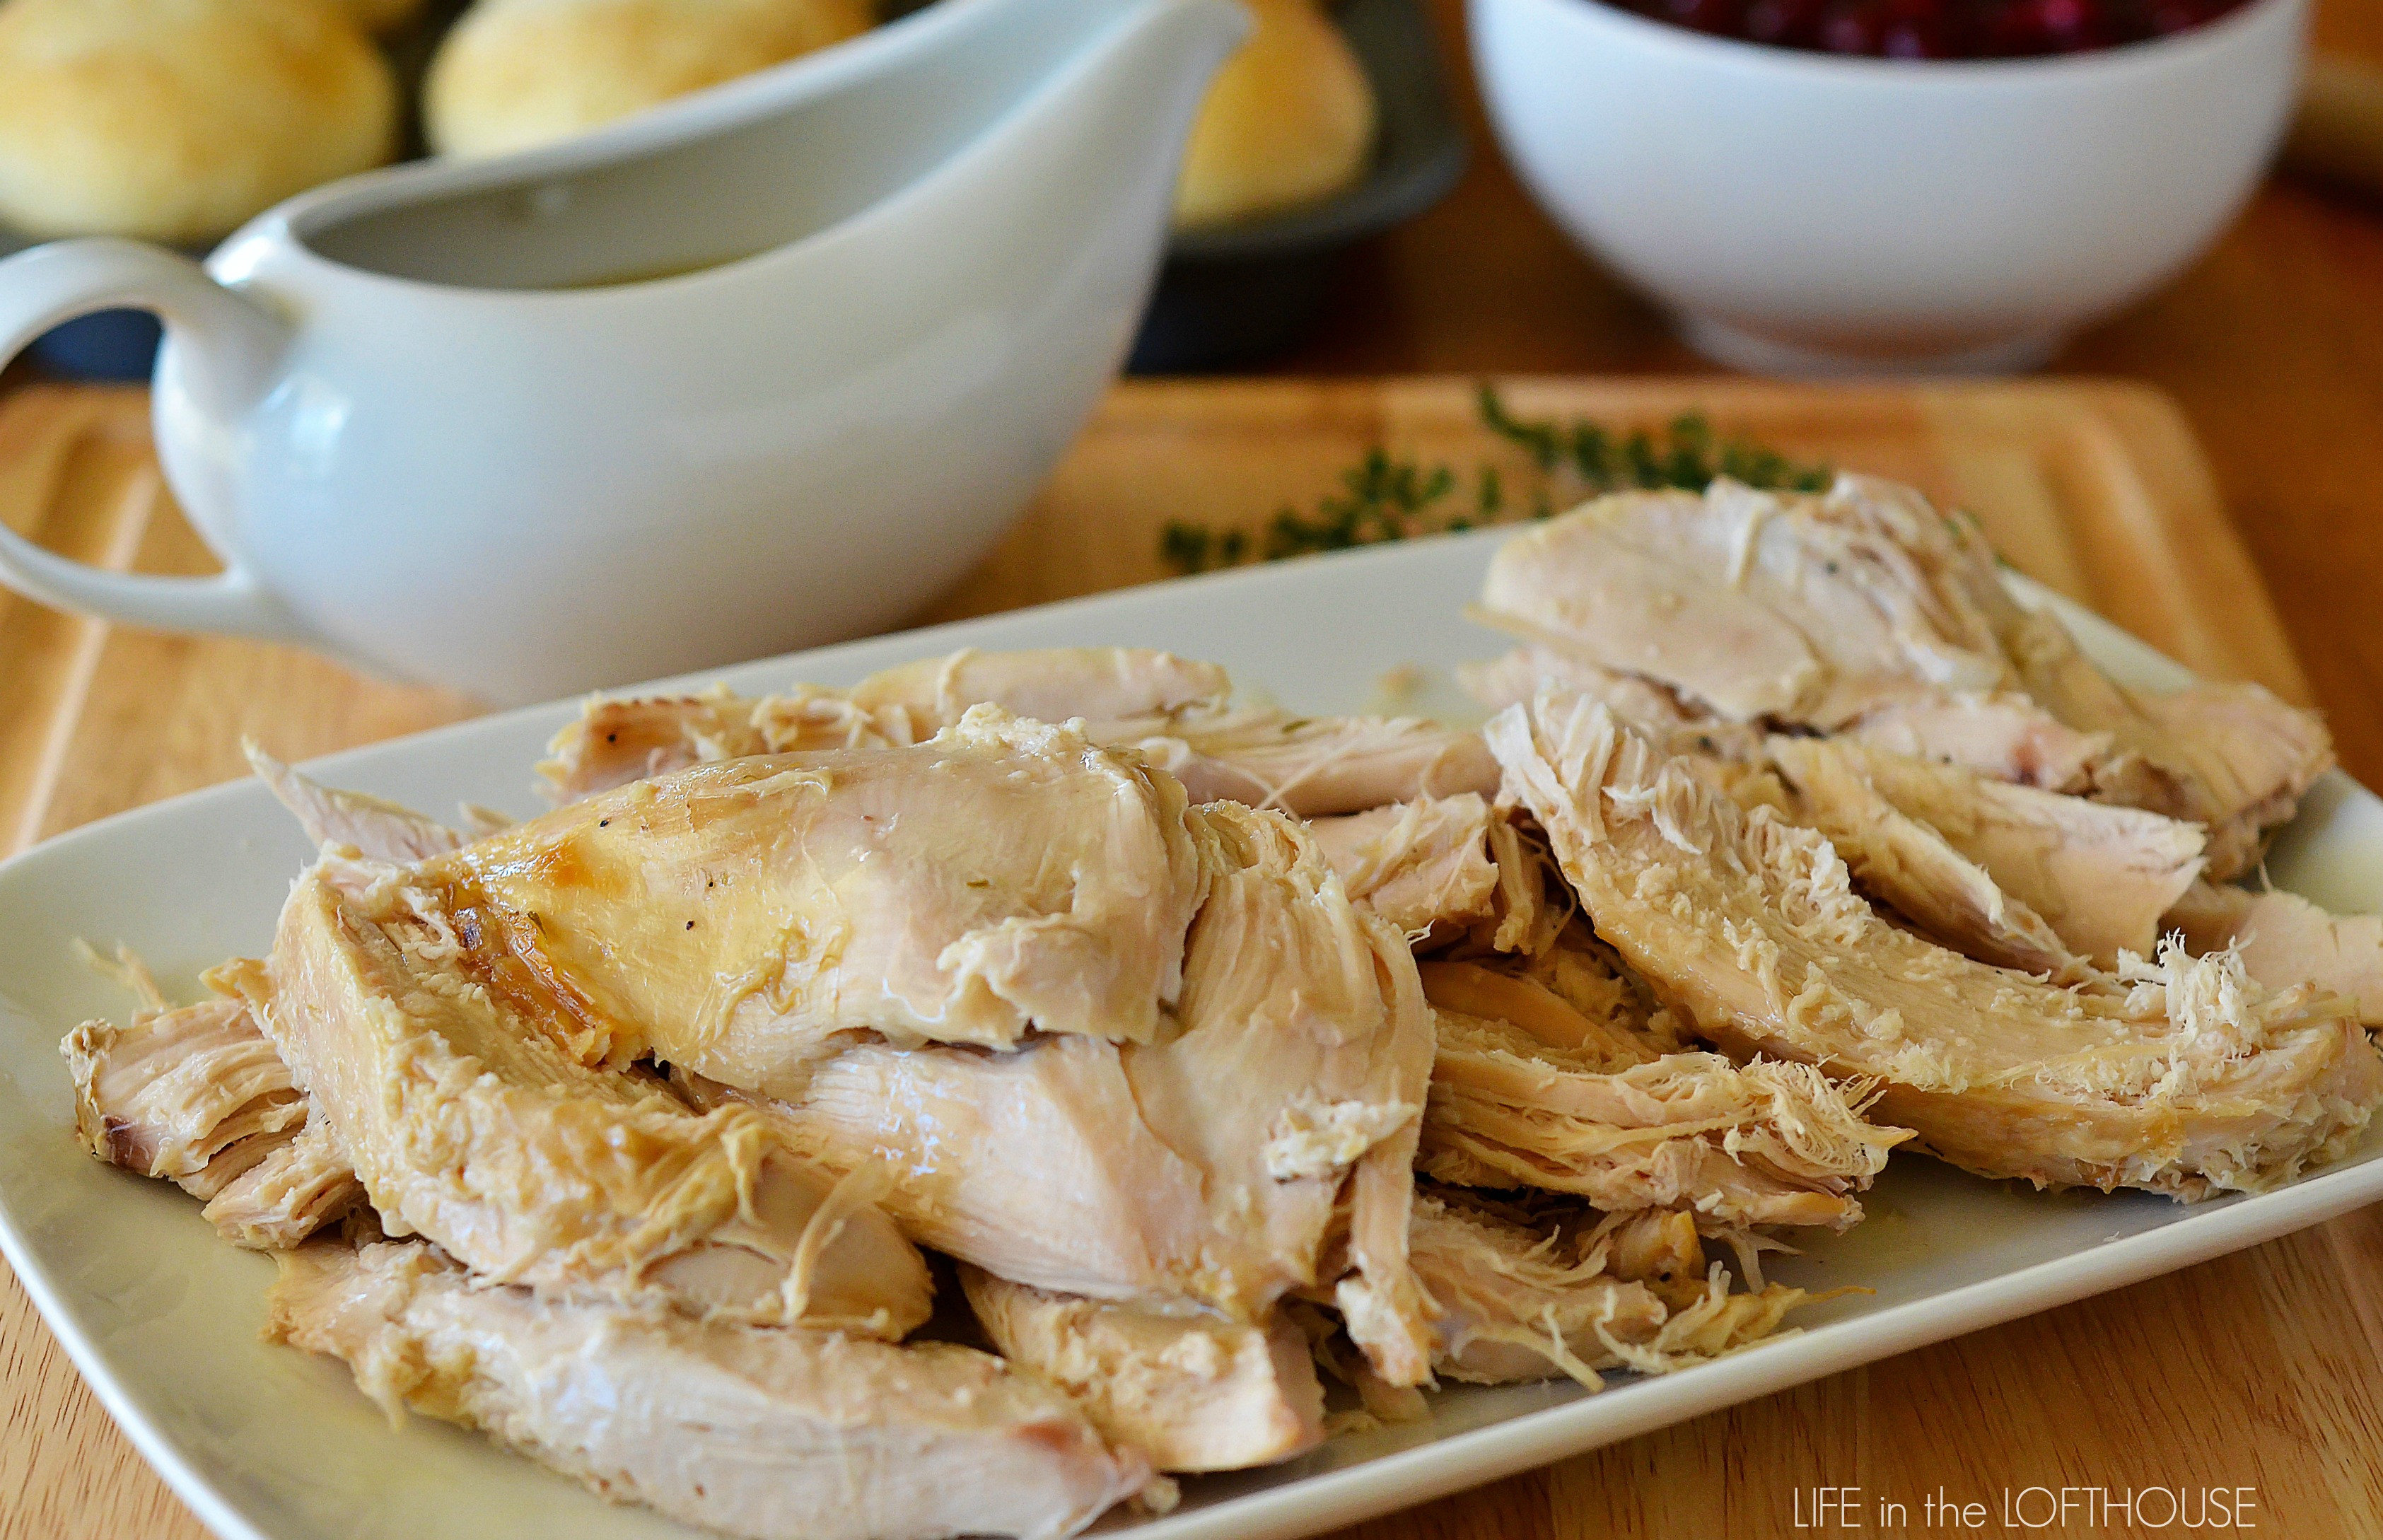 Crock Pot Turkey Recipes For Thanksgiving  Crock Pot Turkey and Gravy Life In The Lofthouse